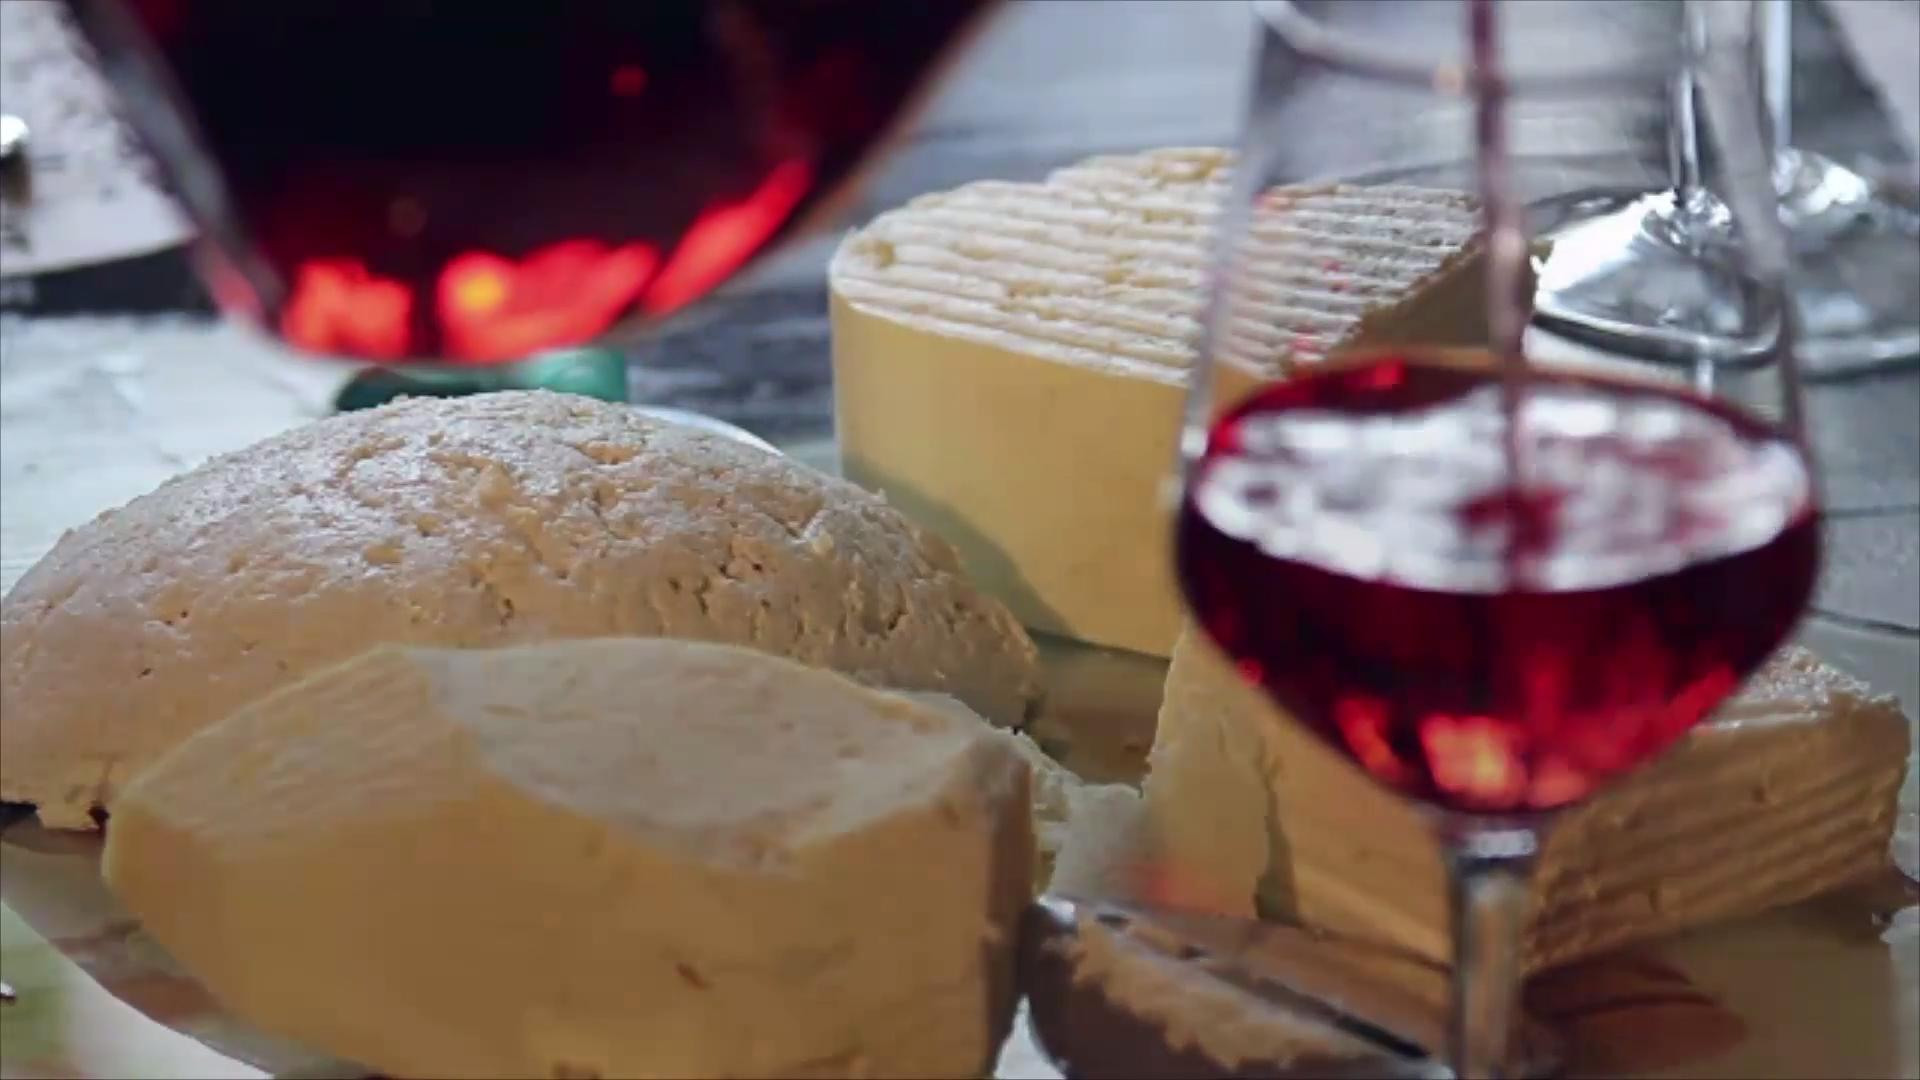 5 Things That Separate a Good Cheese Board from a Bad One, According to a Fromagère